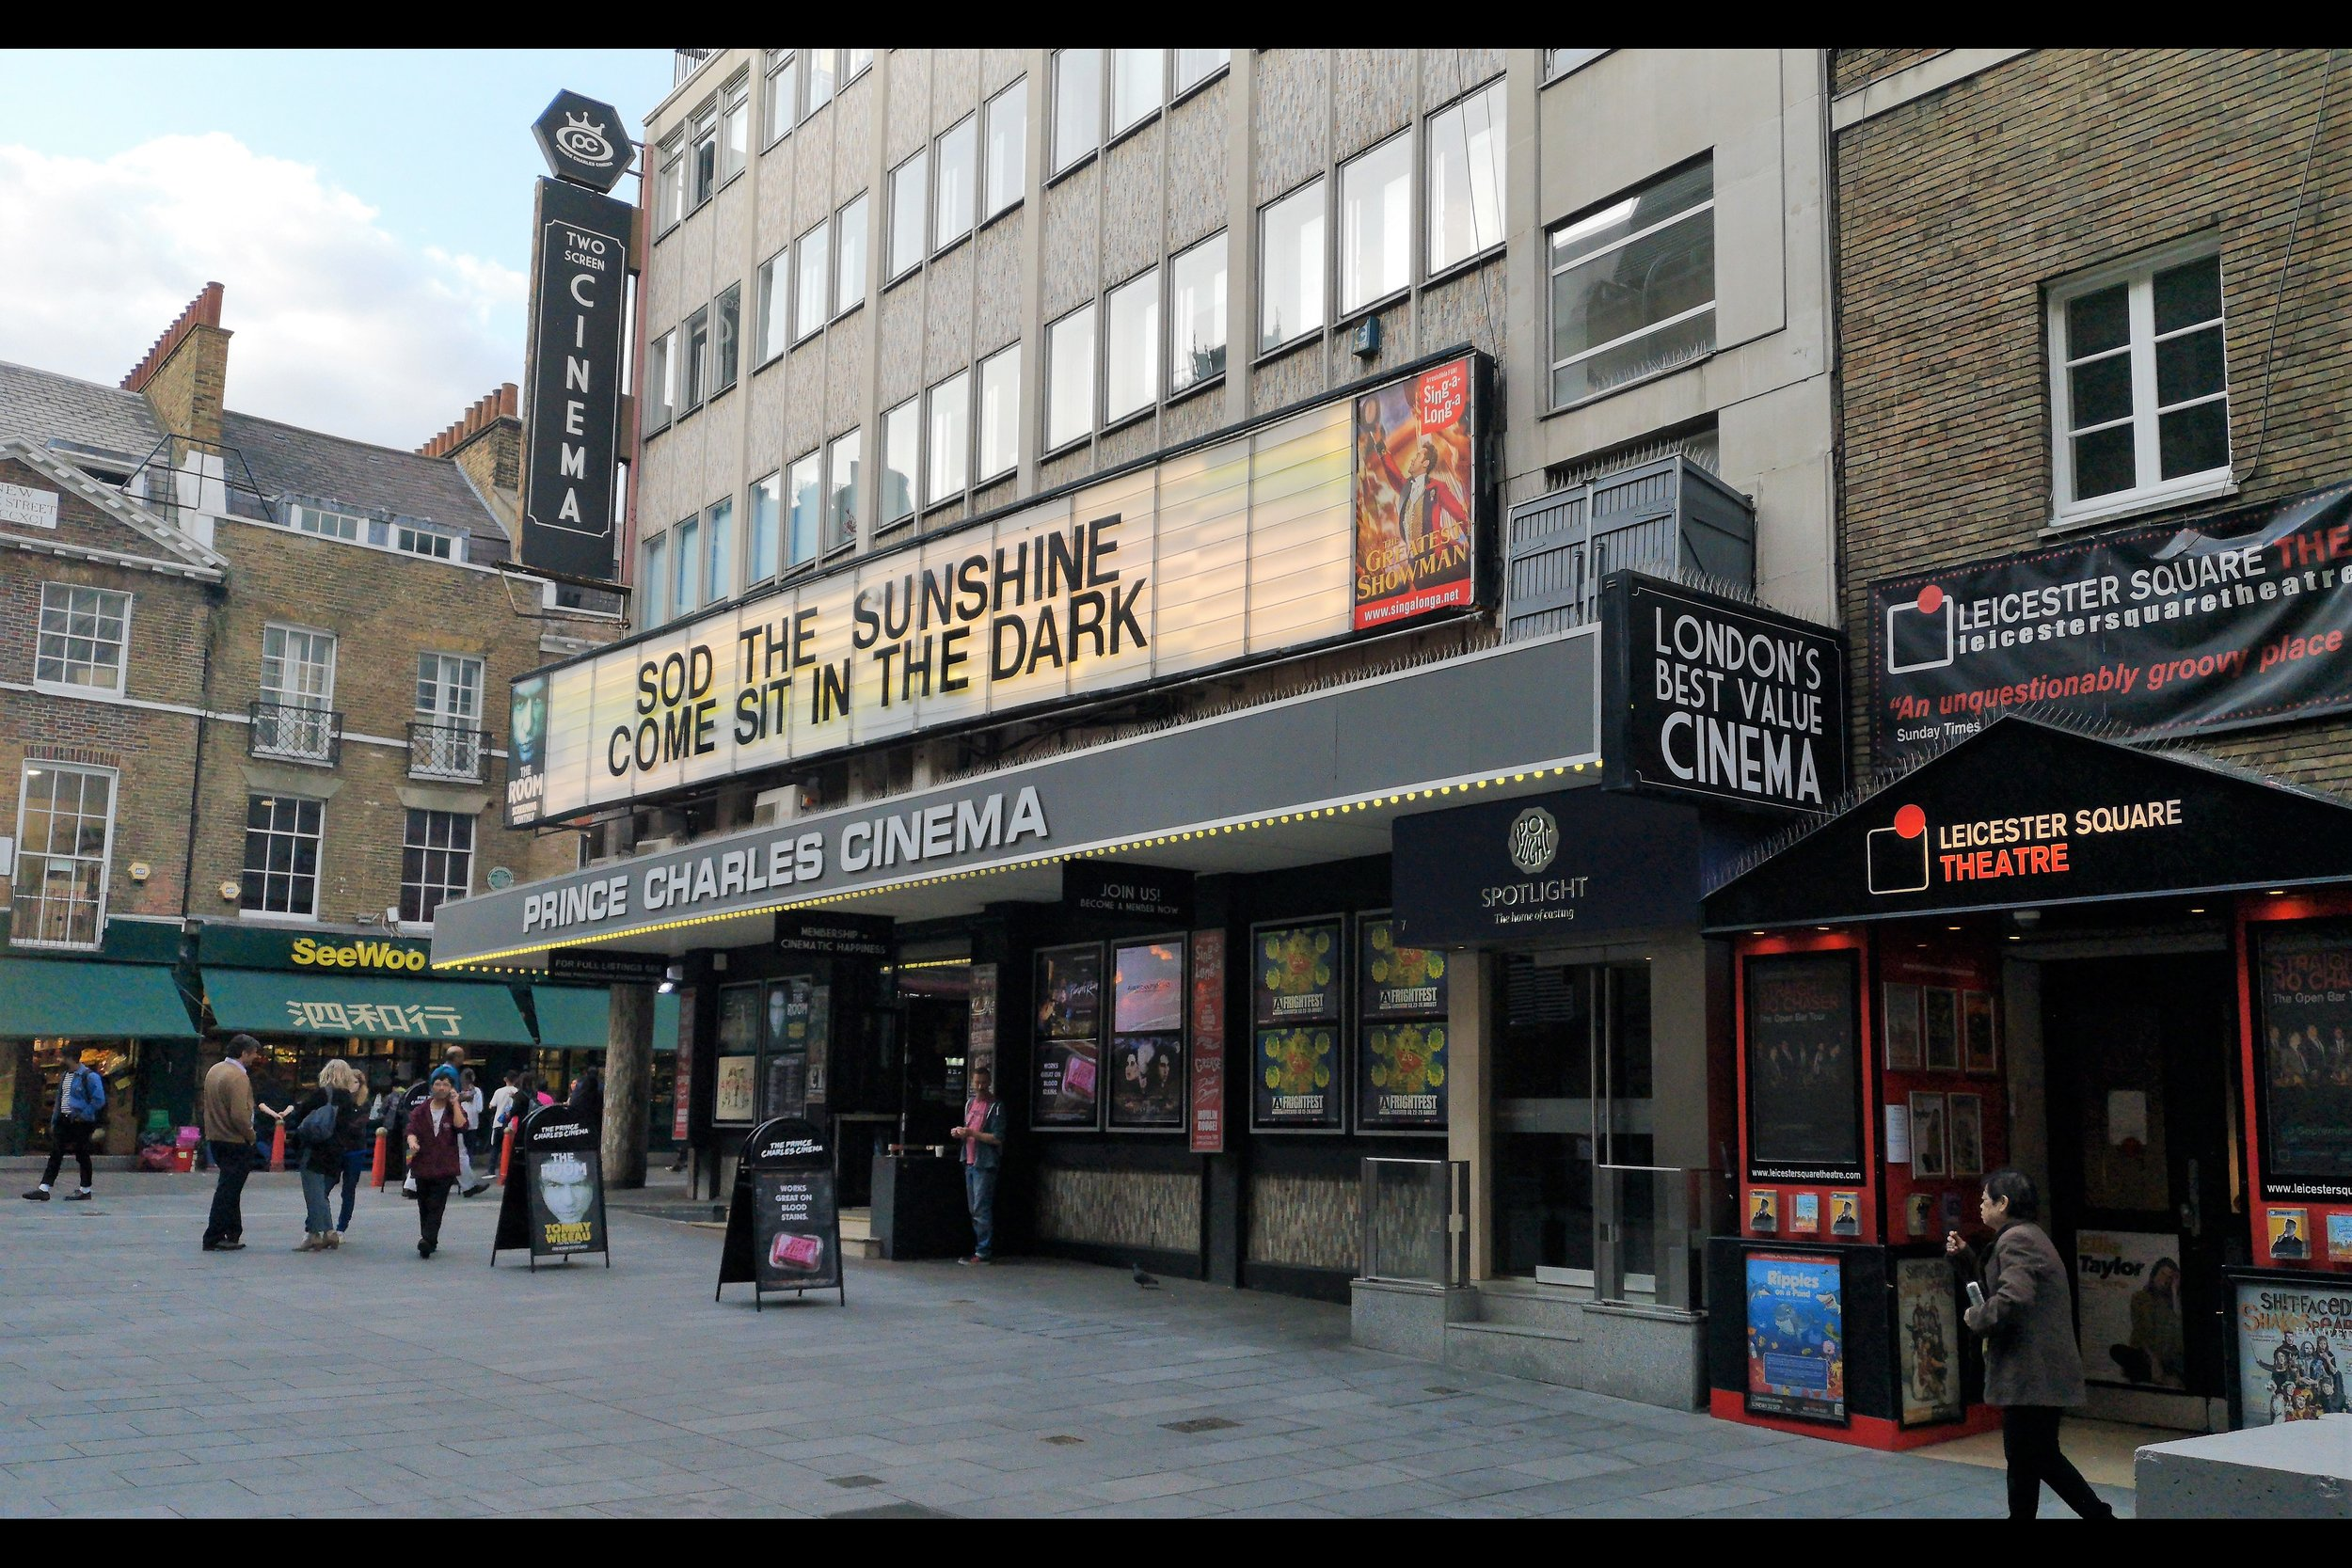 Surprisingly this is NOT a custom Frightfest marquee on the exterior of the Prince Charles Cinema, one of two cinemas hosting part of Frightfest 2019.